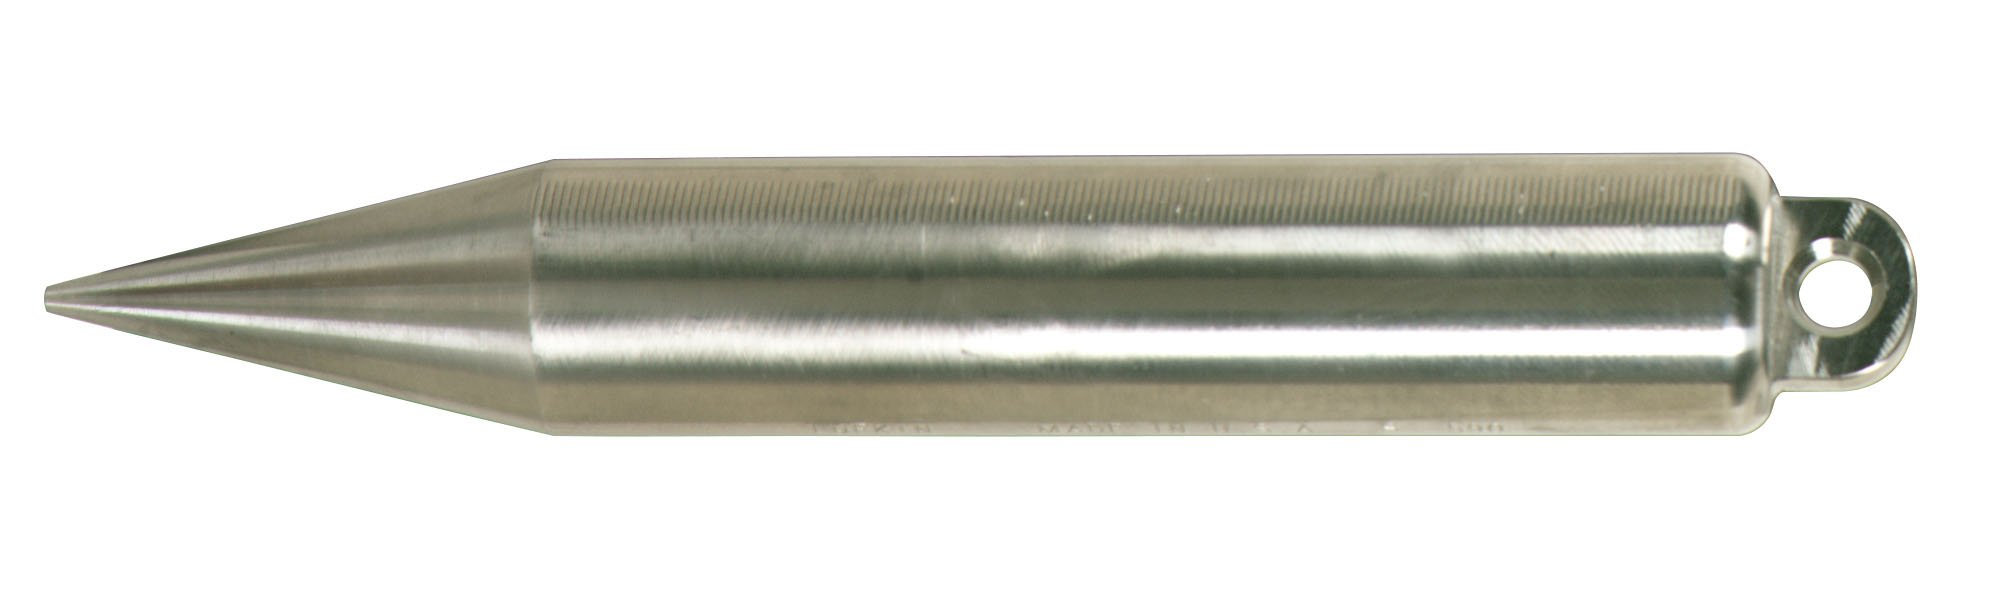 Lufkin S590 20-Ounce Stainless Steel Cylindrical Shape Plumb Bob by Apex Tool Group